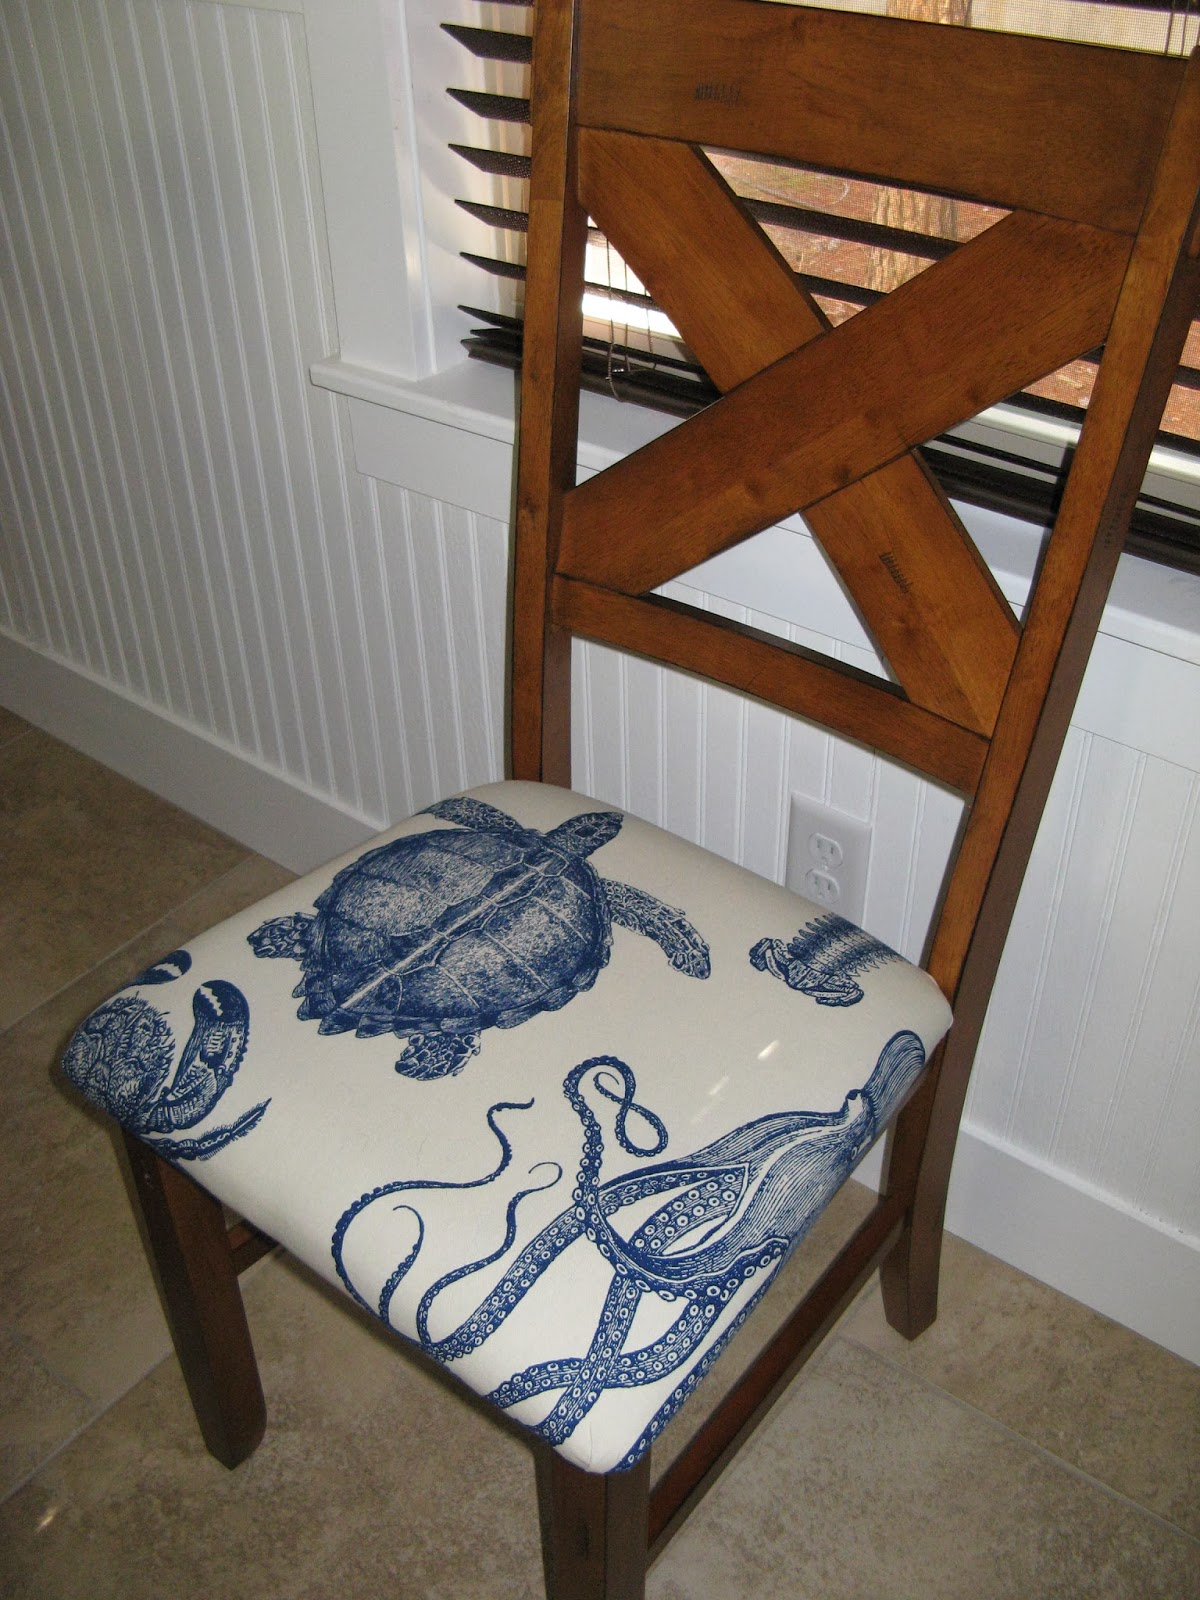 How to reupholster chair seats with rounded corners